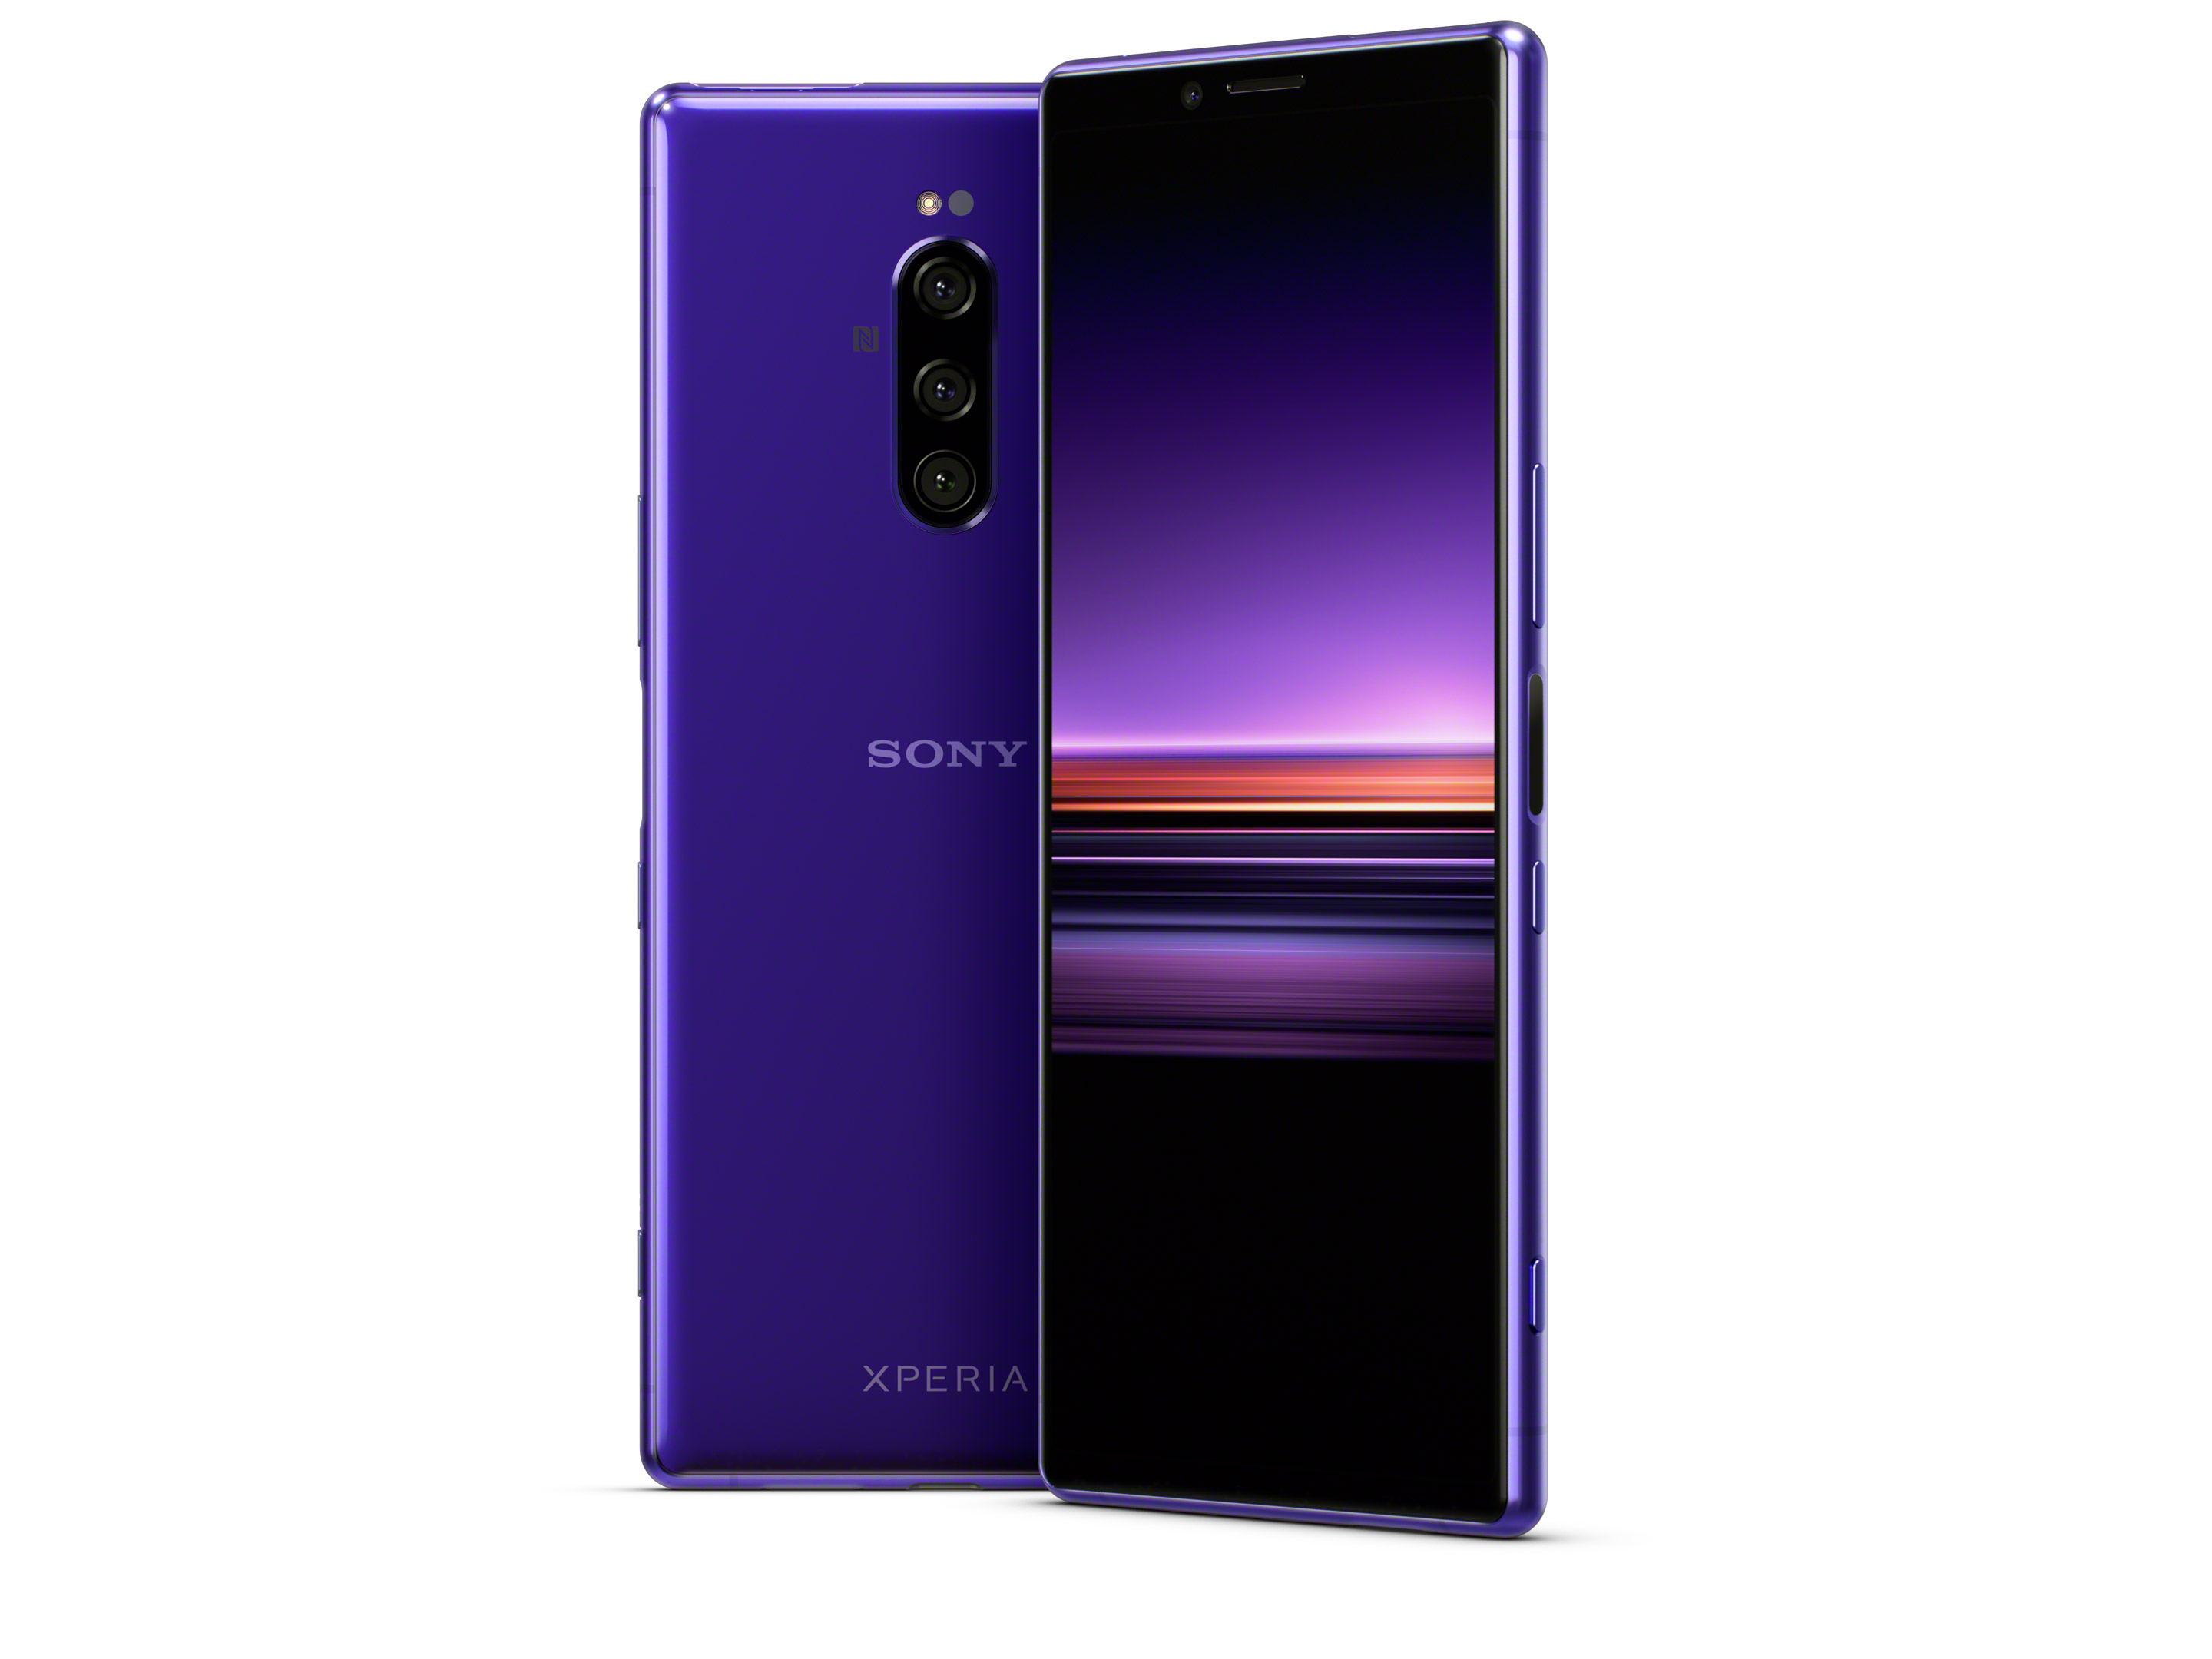 The Xperia 1 in purple